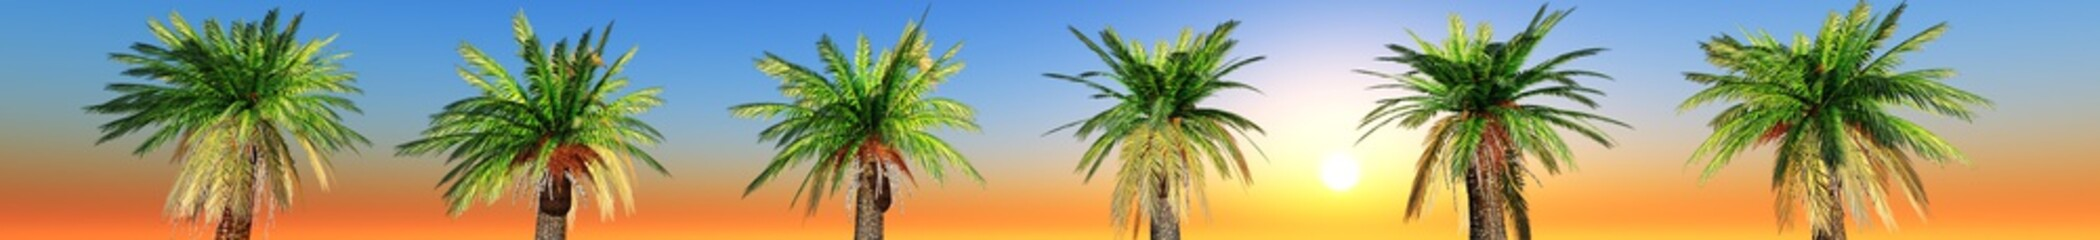 a row of palm trees at sunset. panorama. banner.